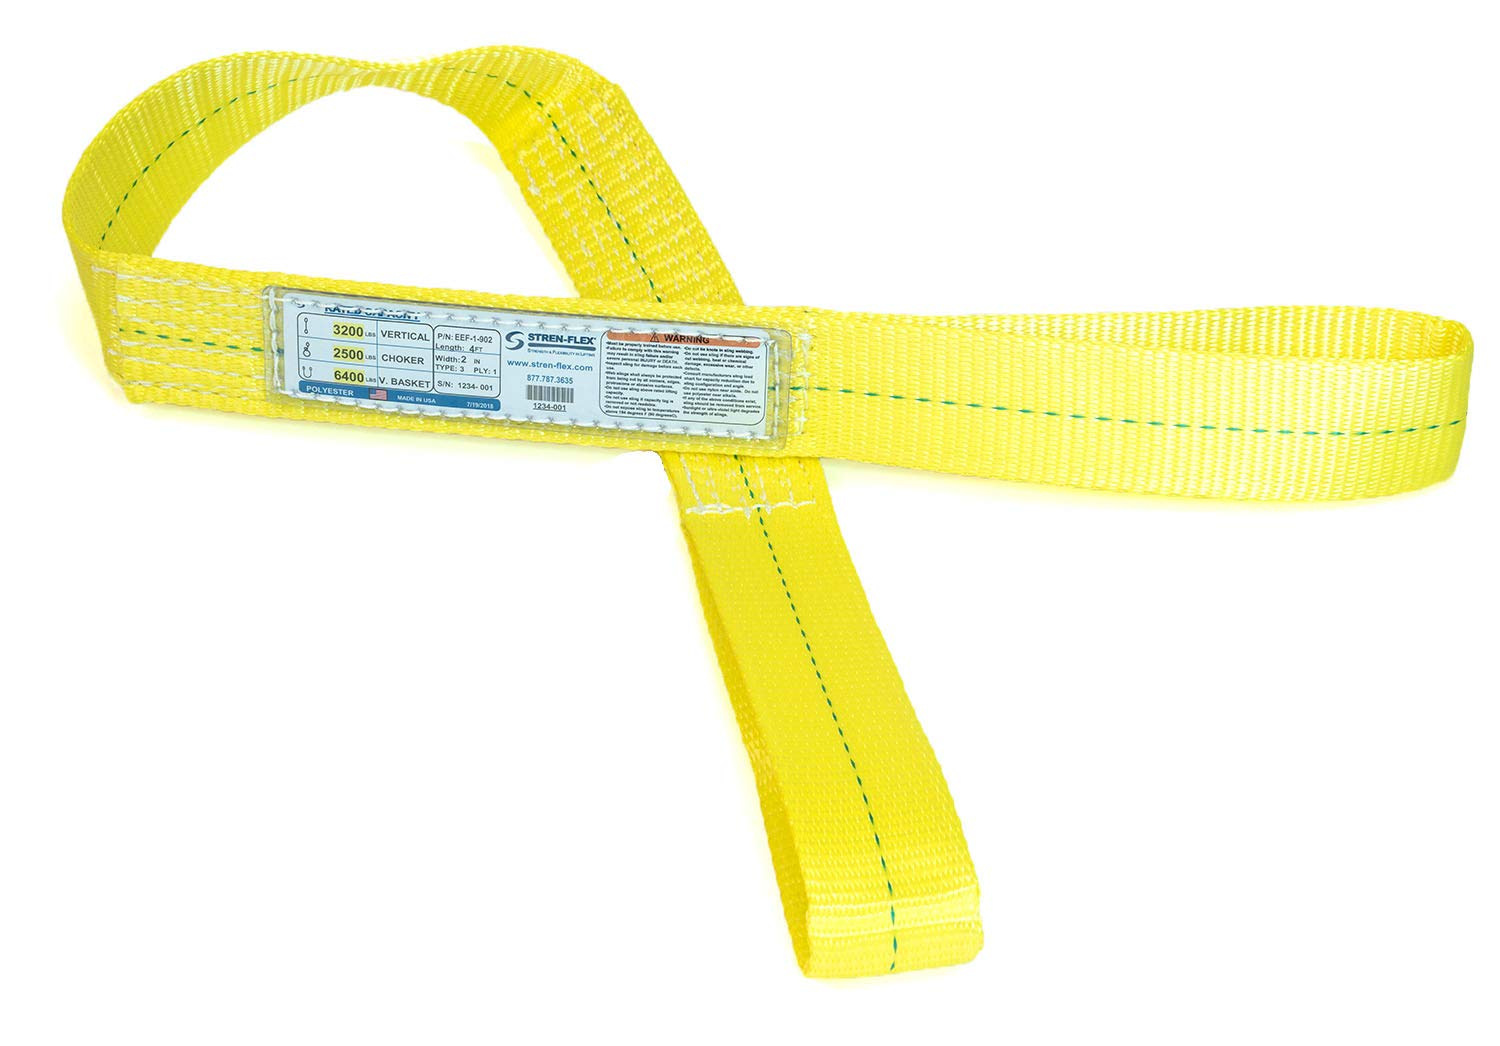 Stren-Flex - Made in USA 18 Discount Inexpensive mail order ft Sling We Web Flat Eye Polyester